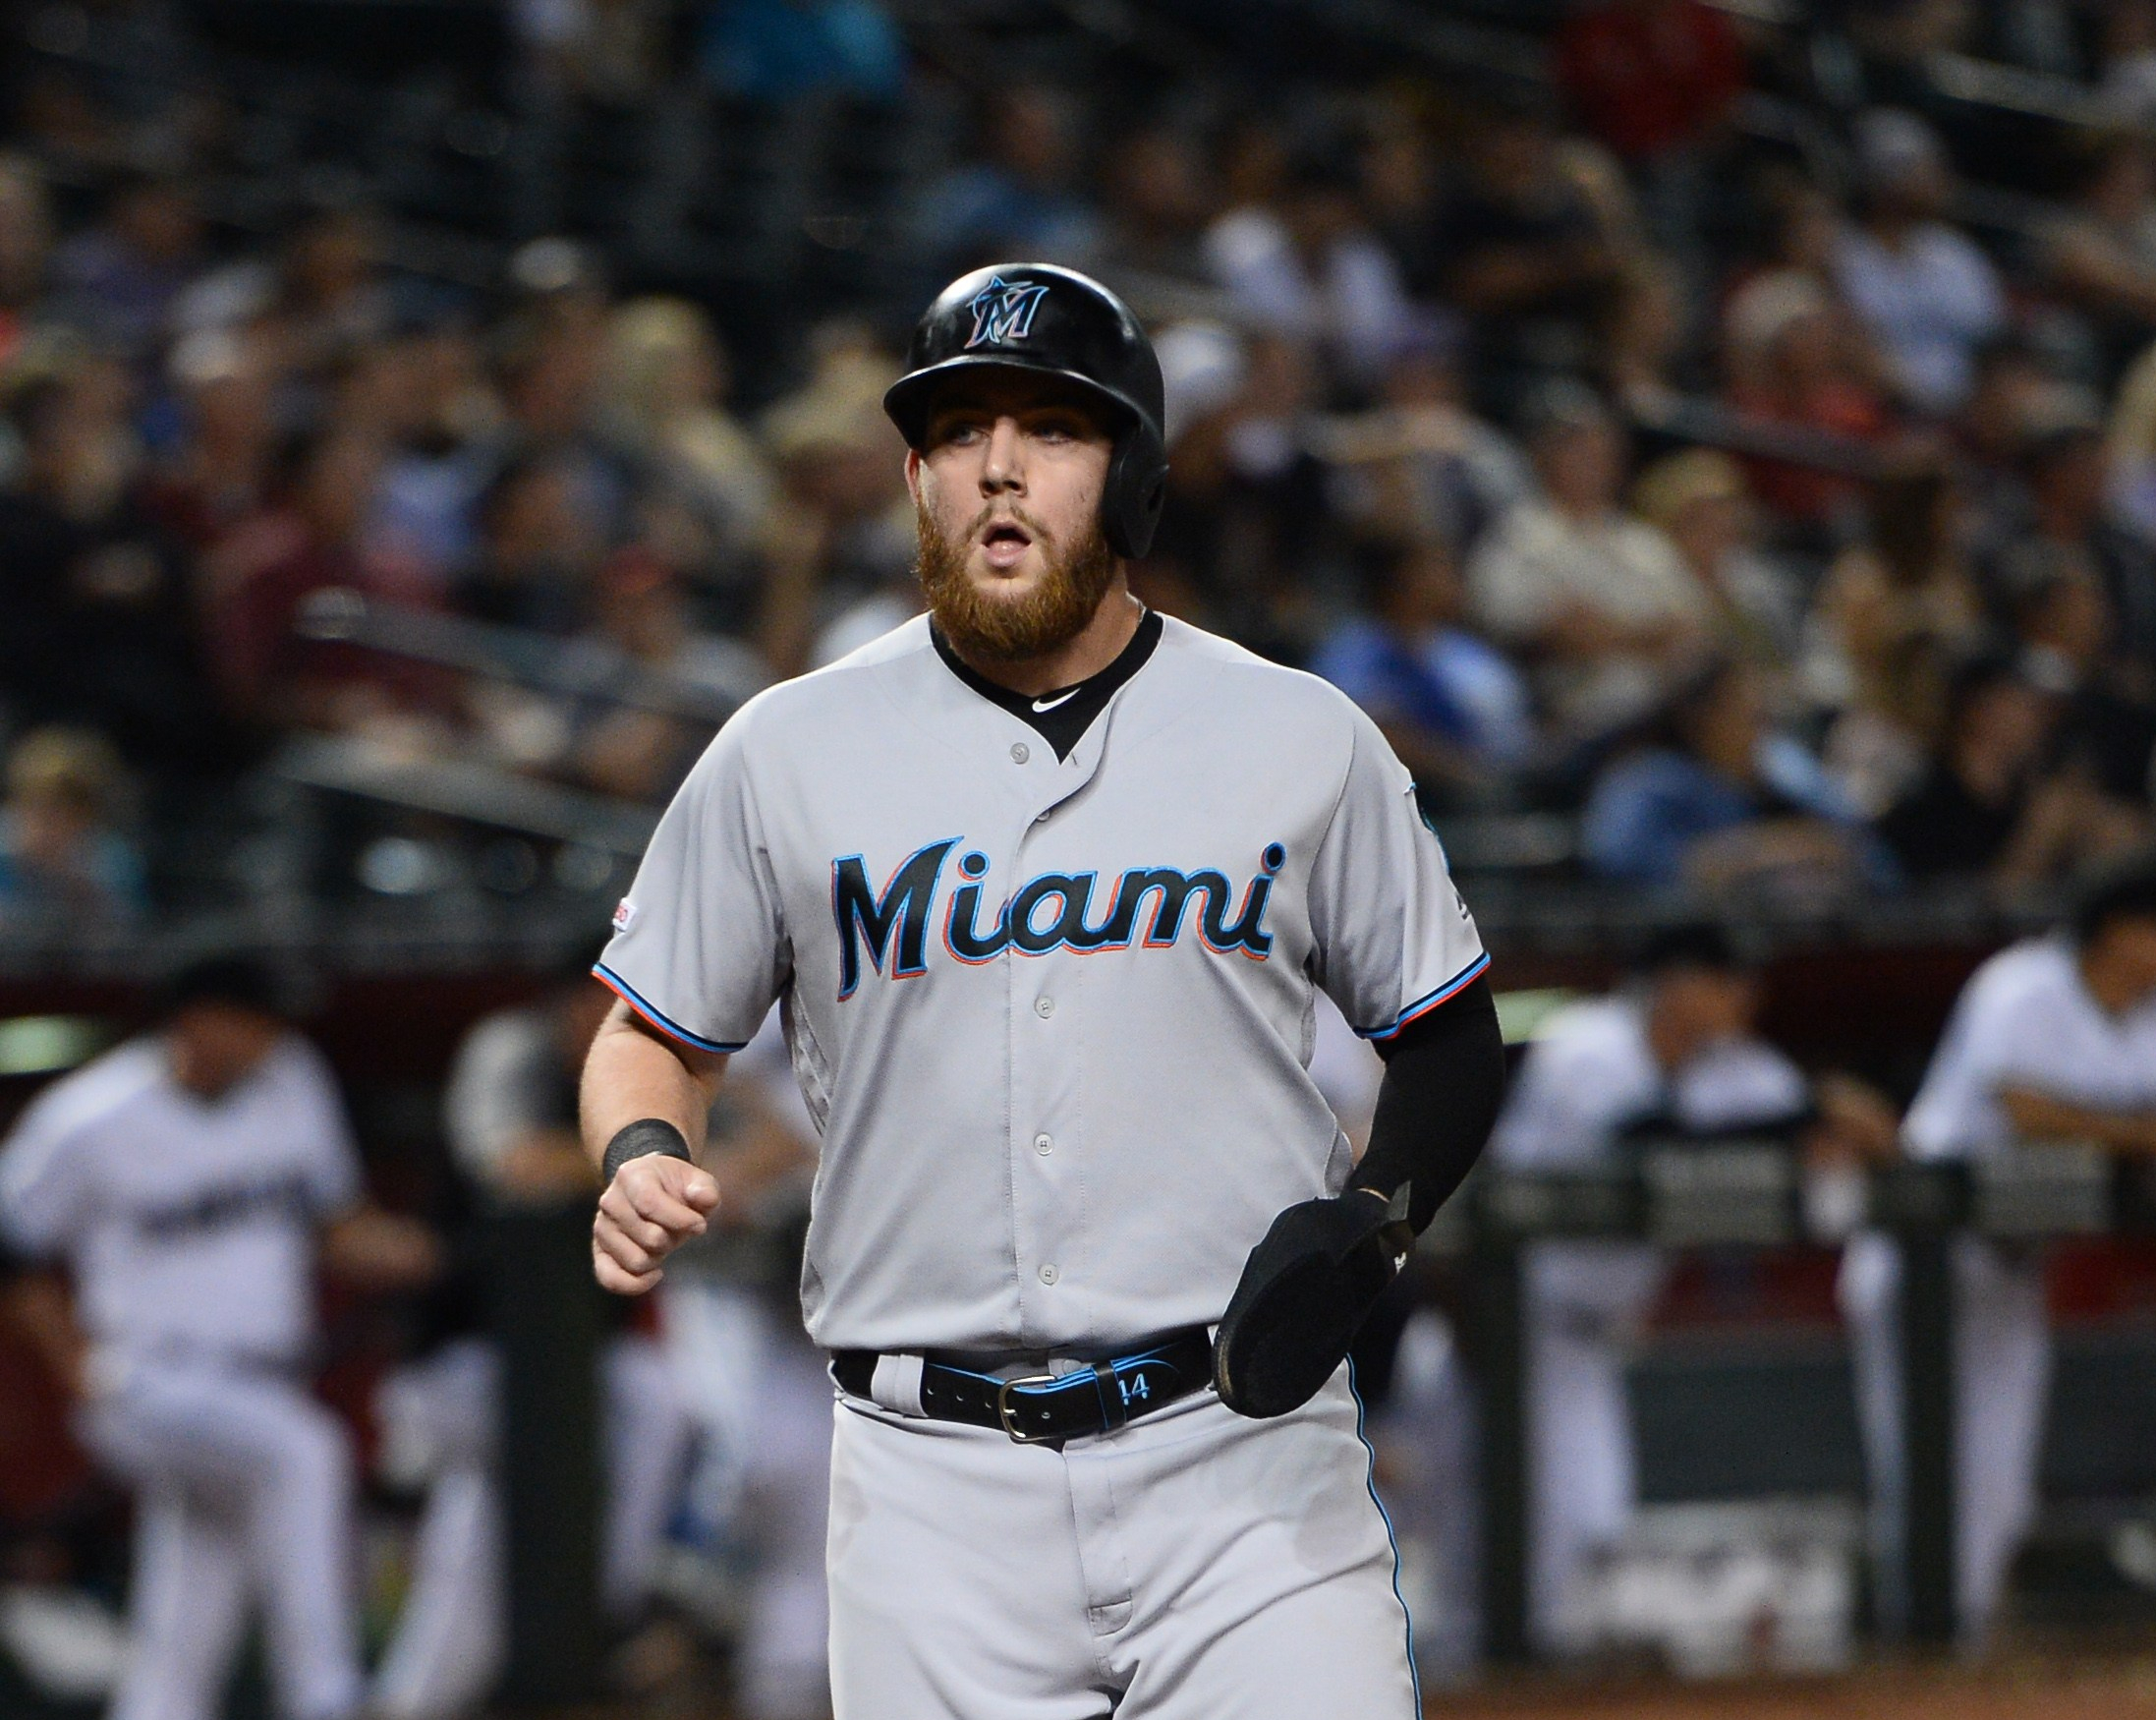 Miami Marlins trade outfielder Austin Dean to the Cardinals